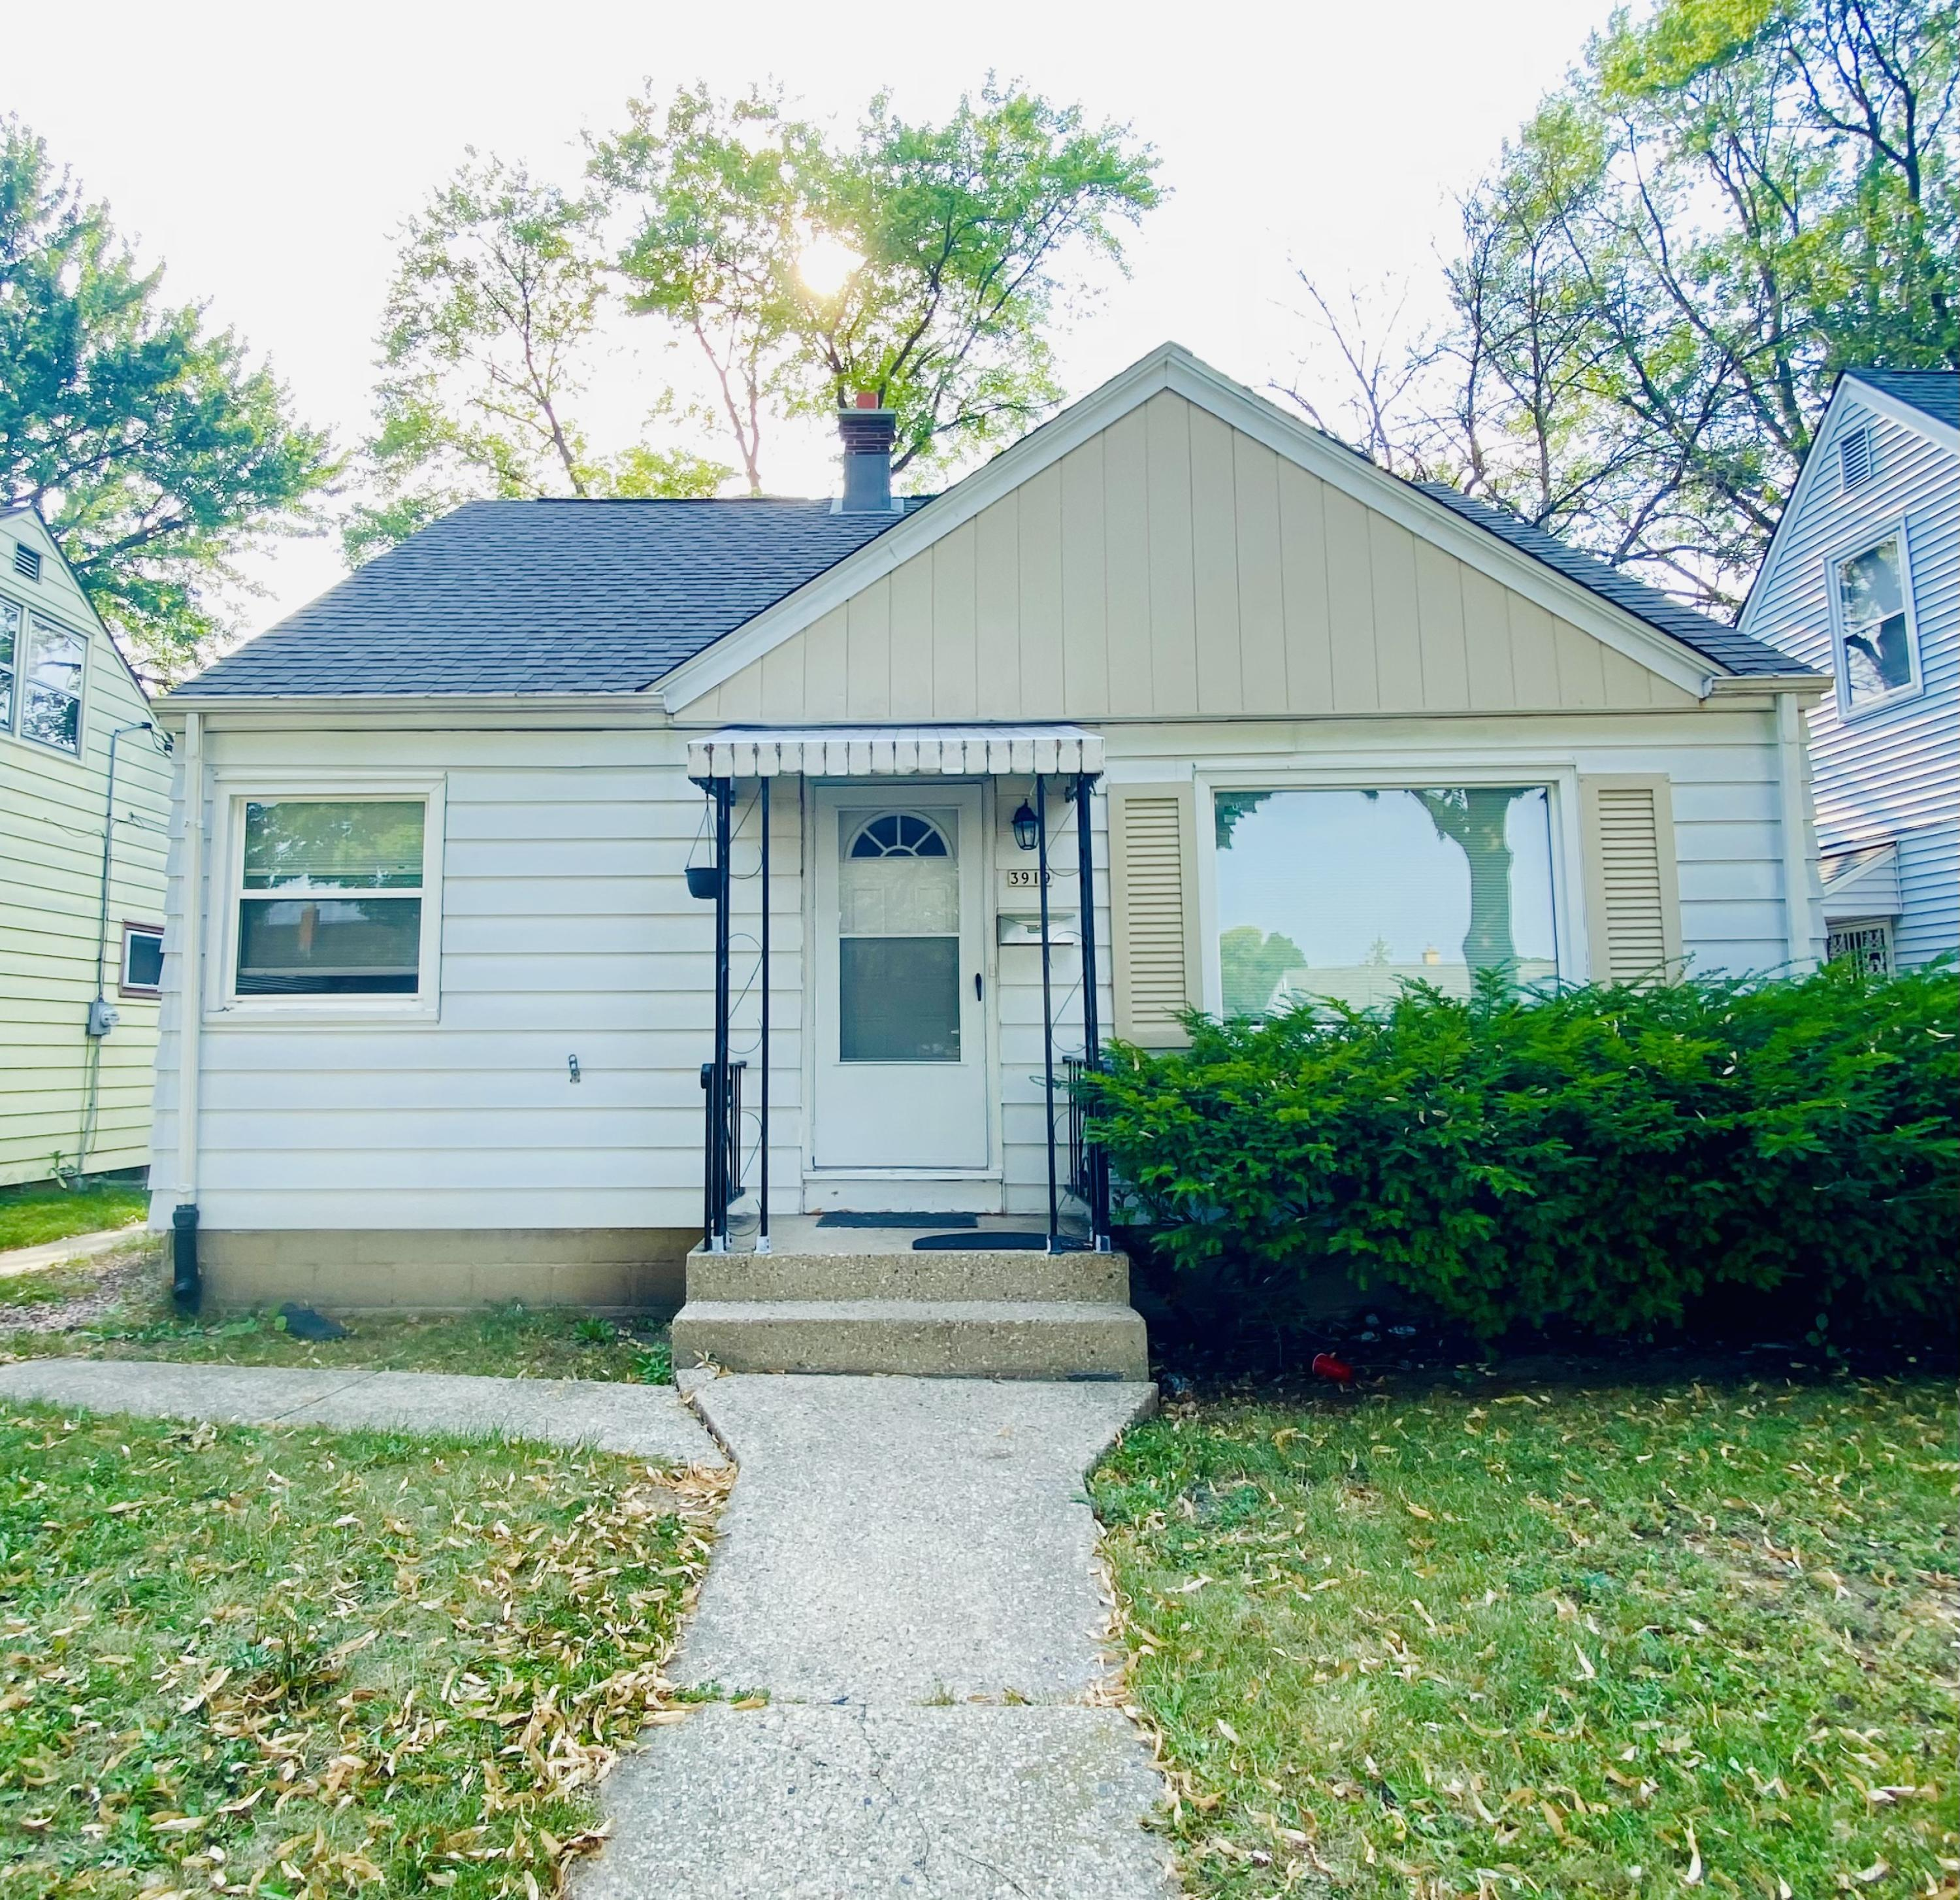 3919 69th, Milwaukee, Wisconsin 53216, 3 Bedrooms Bedrooms, ,1 BathroomBathrooms,Single-Family,For Sale,69th,1755580